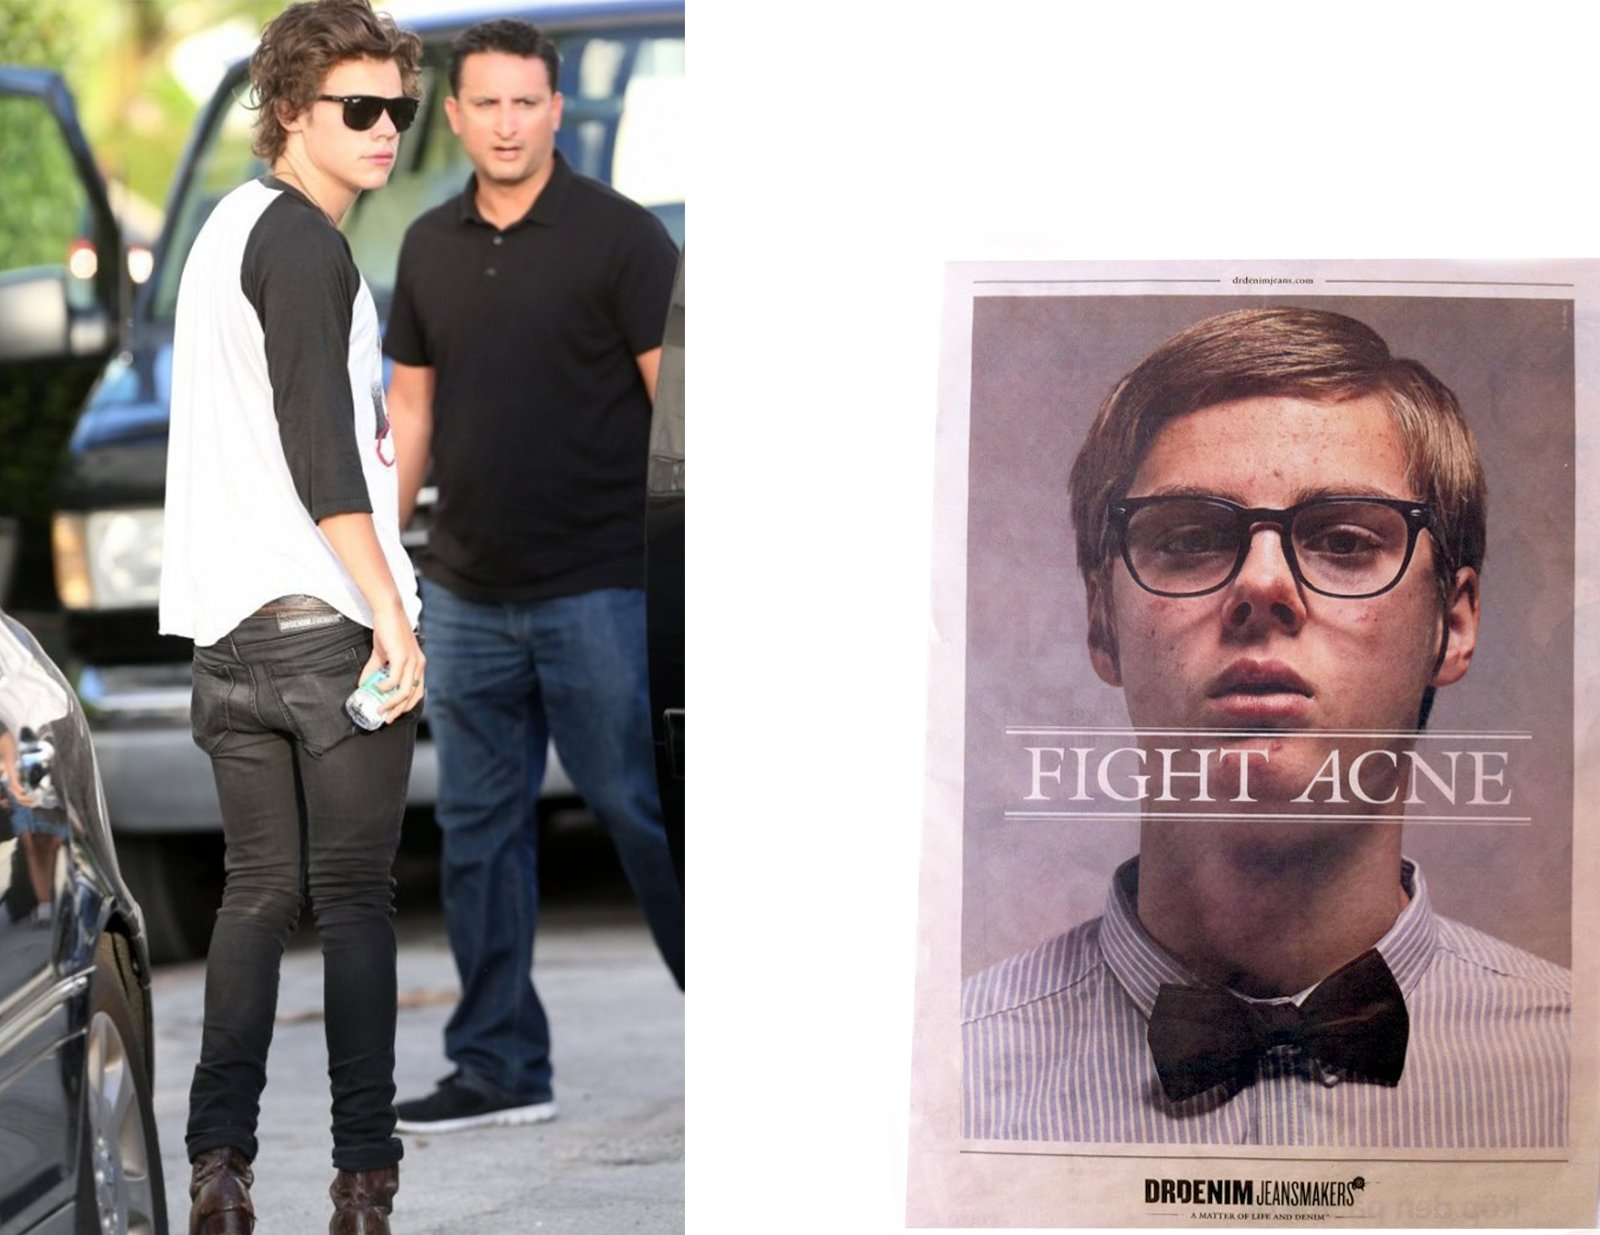 Harry+Acne